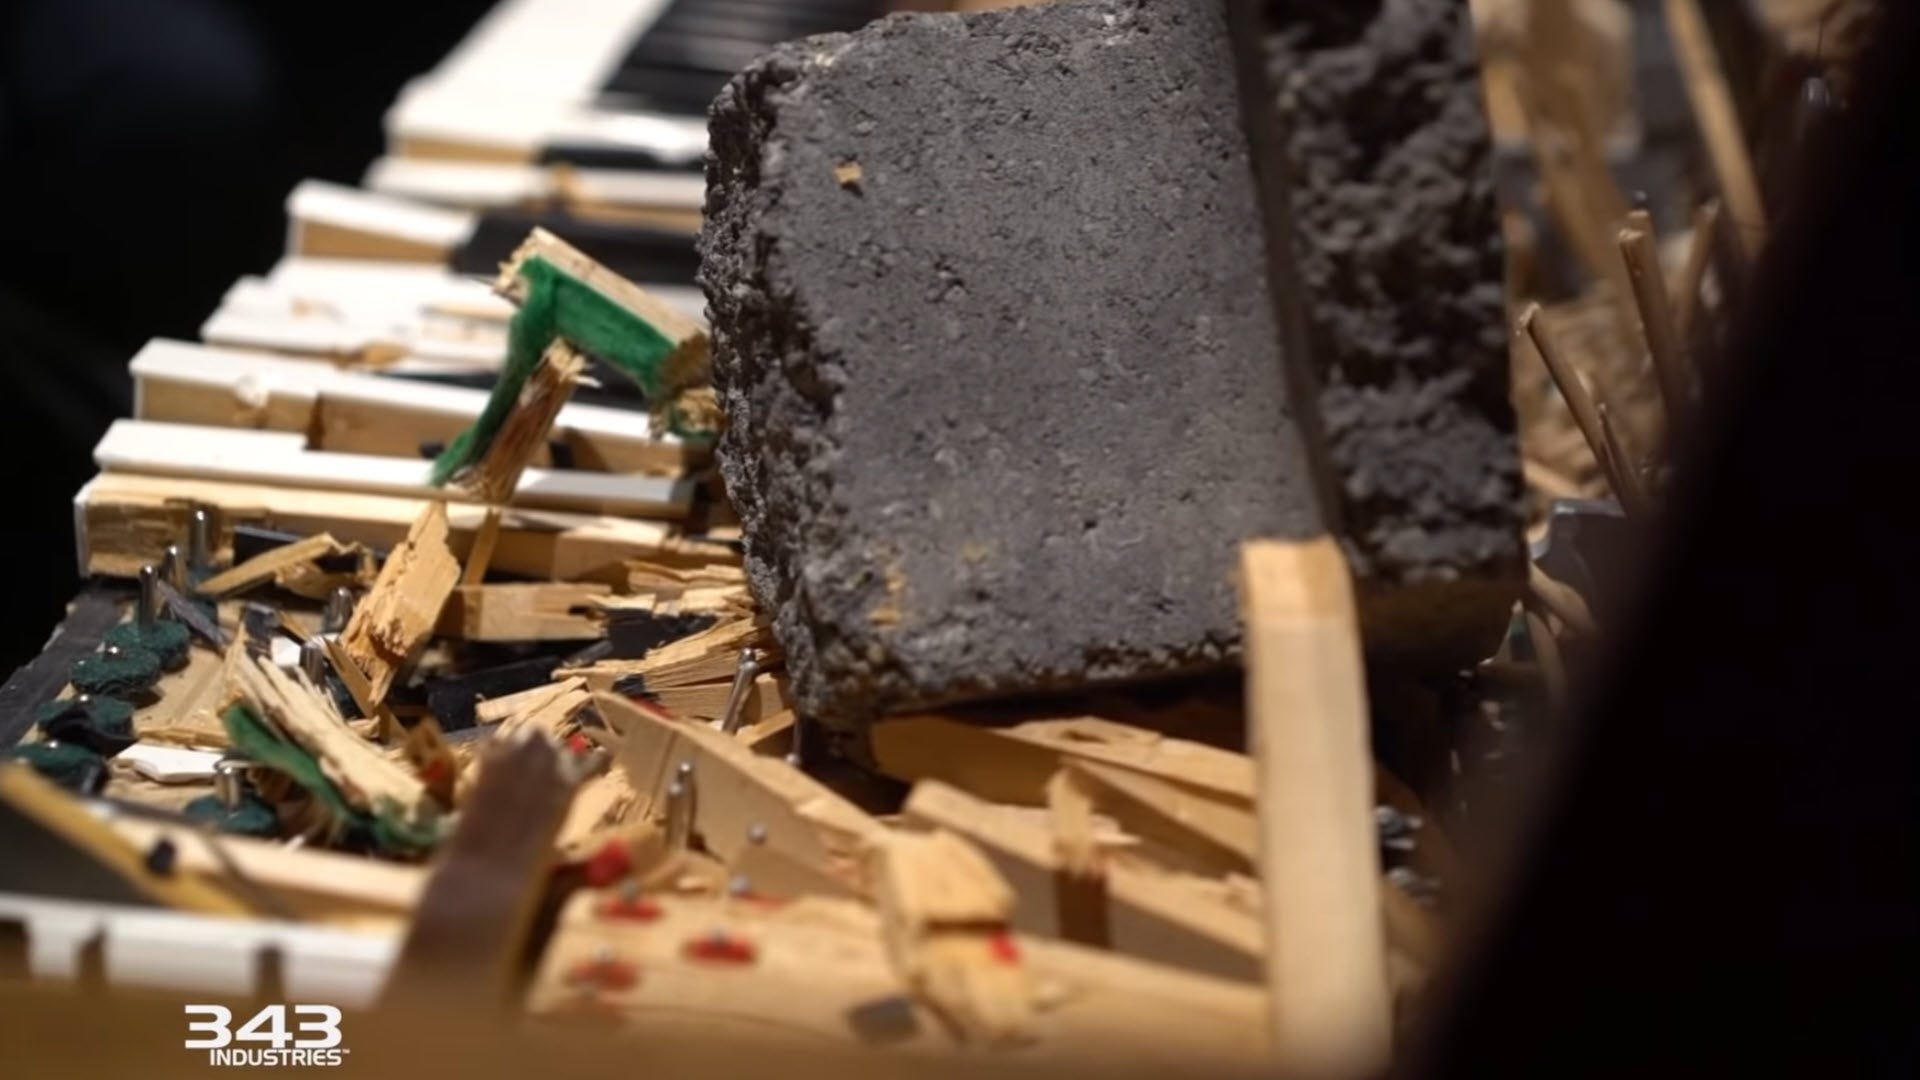 A broken piano keyboard, with a giant rock lying on the destroyed keys.